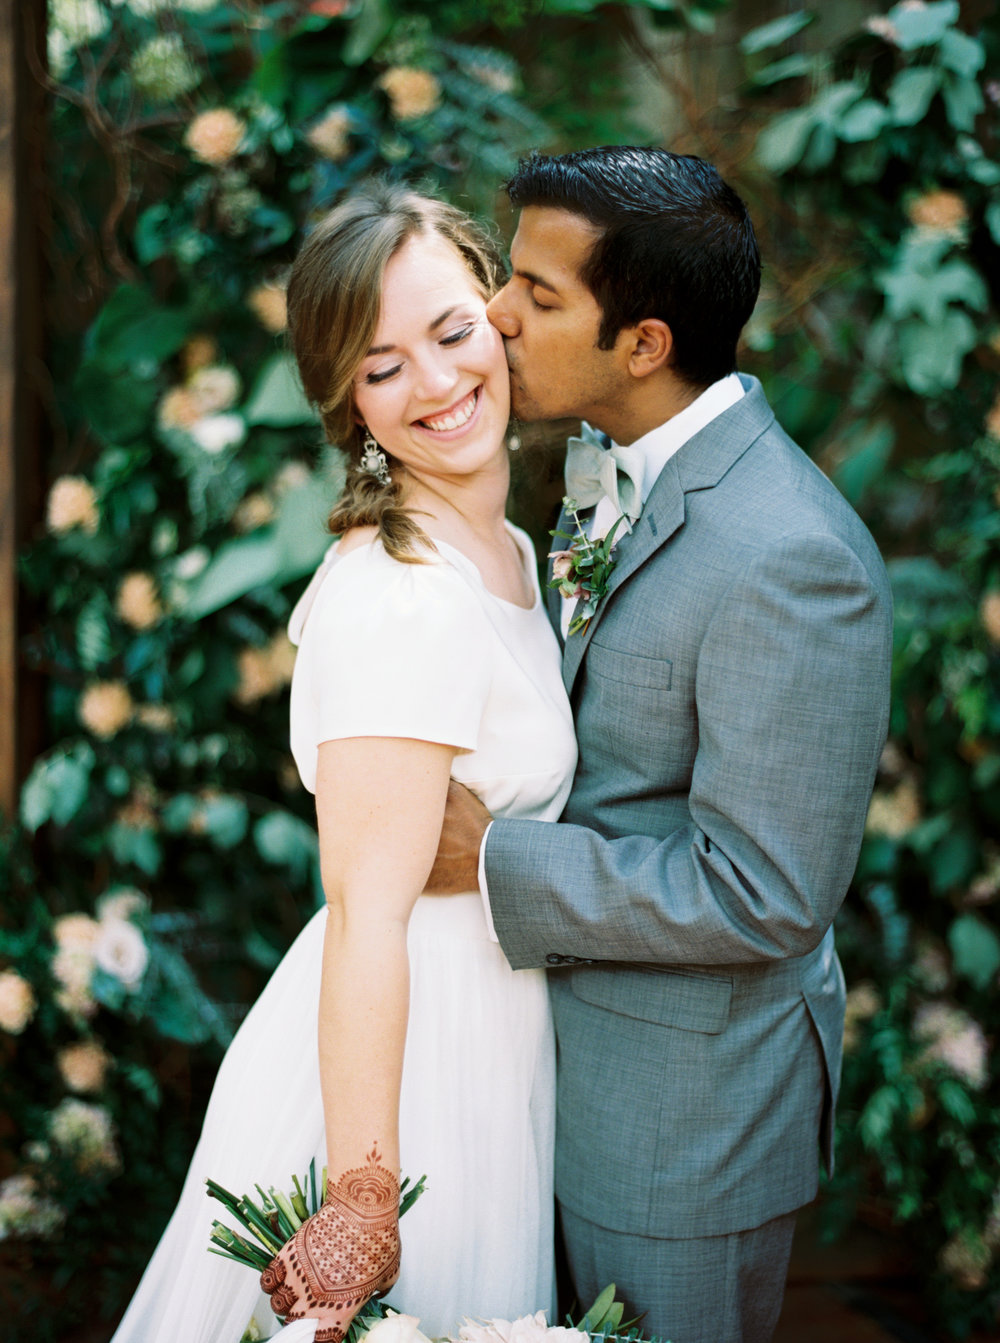 Wahoo_Grill_Atlanta_Indian_Wedding_Abigail_Malone_Photgoraphy_FIlm-112.jpg